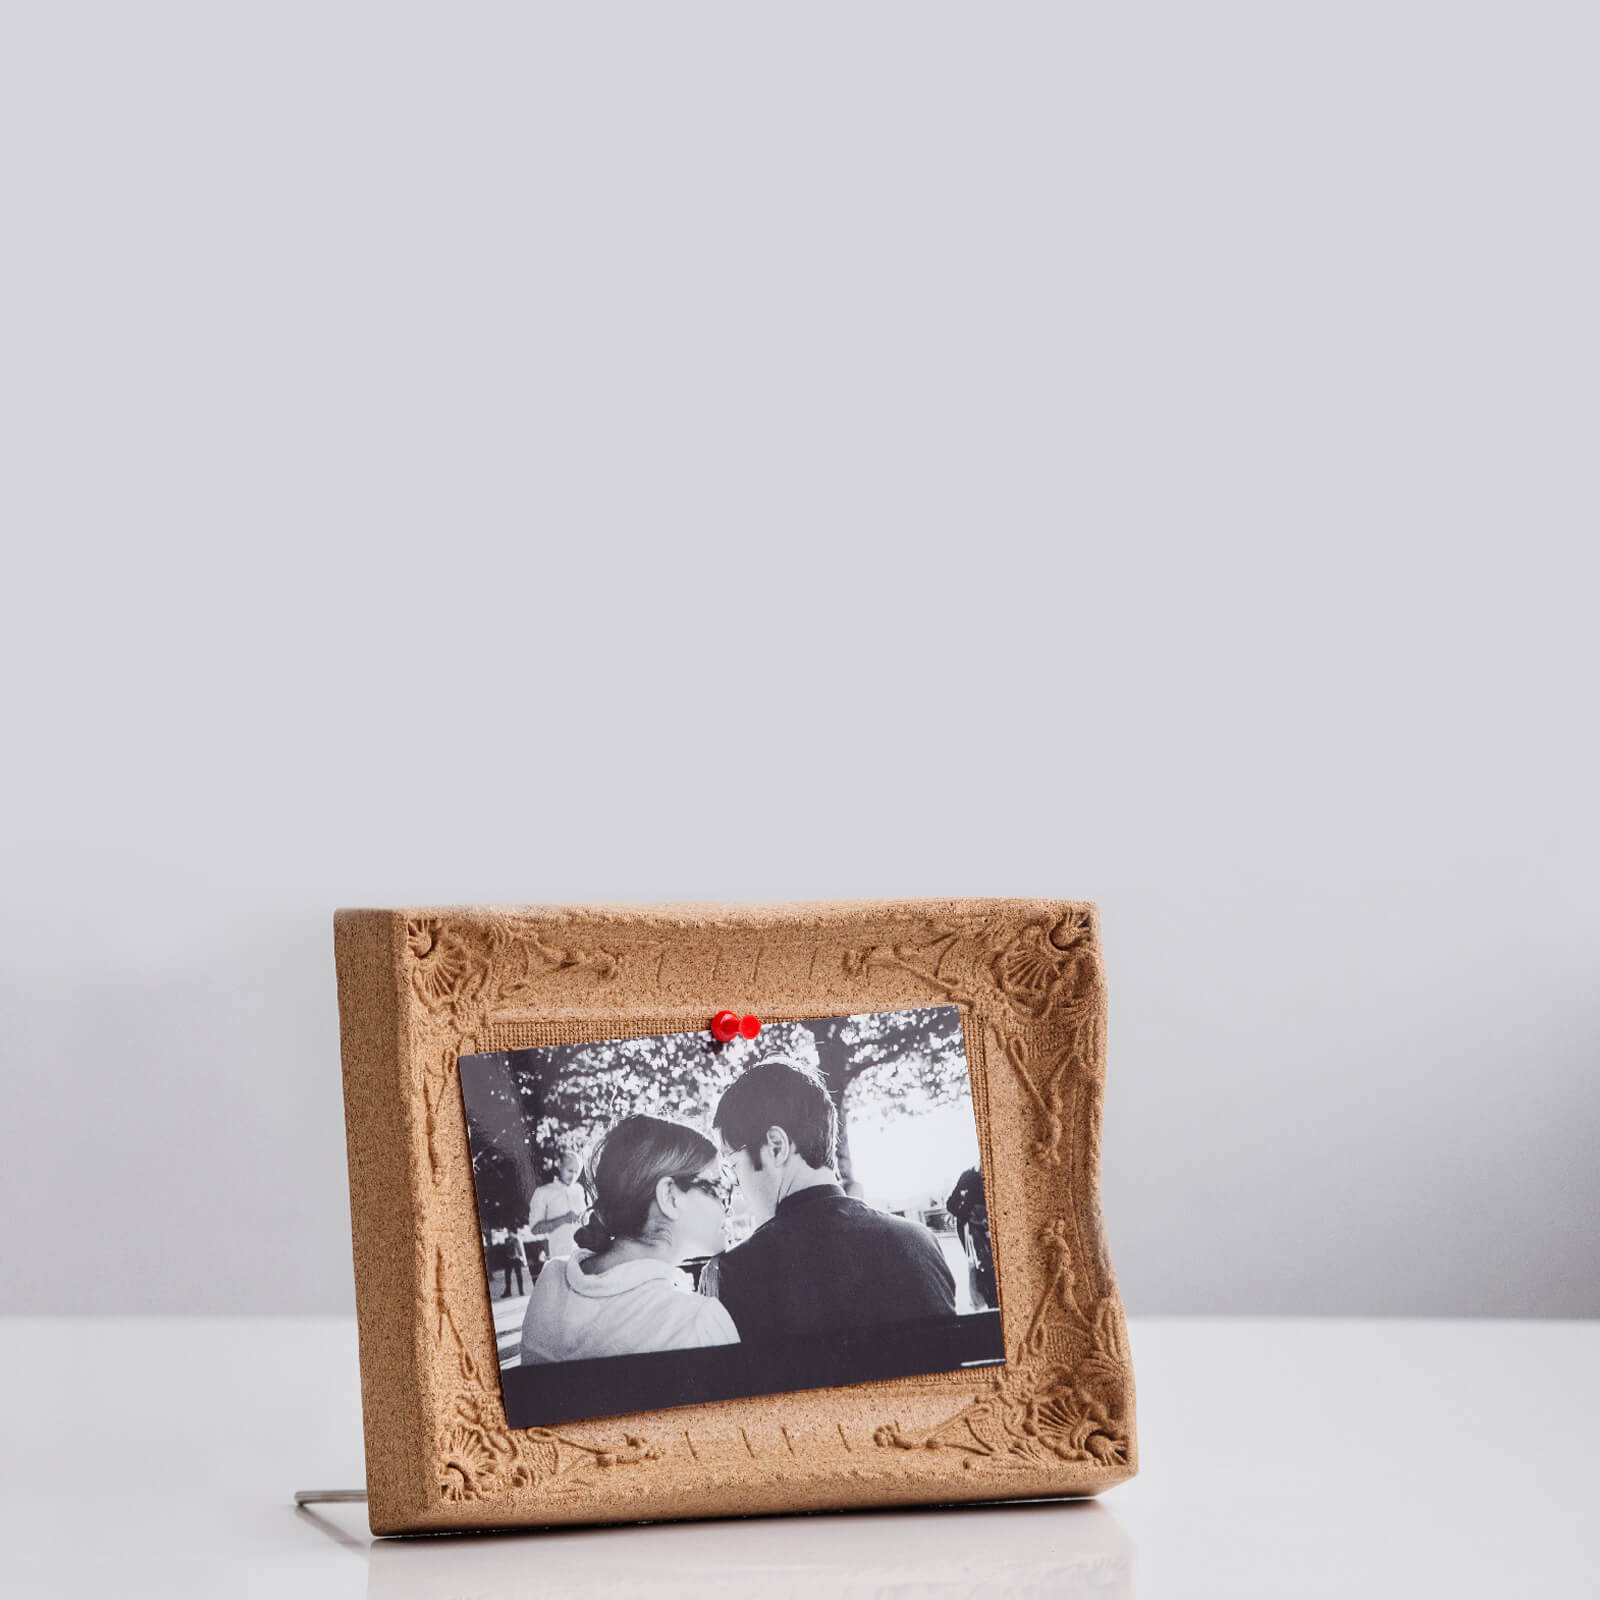 Desktop Cork Board Picture Frame